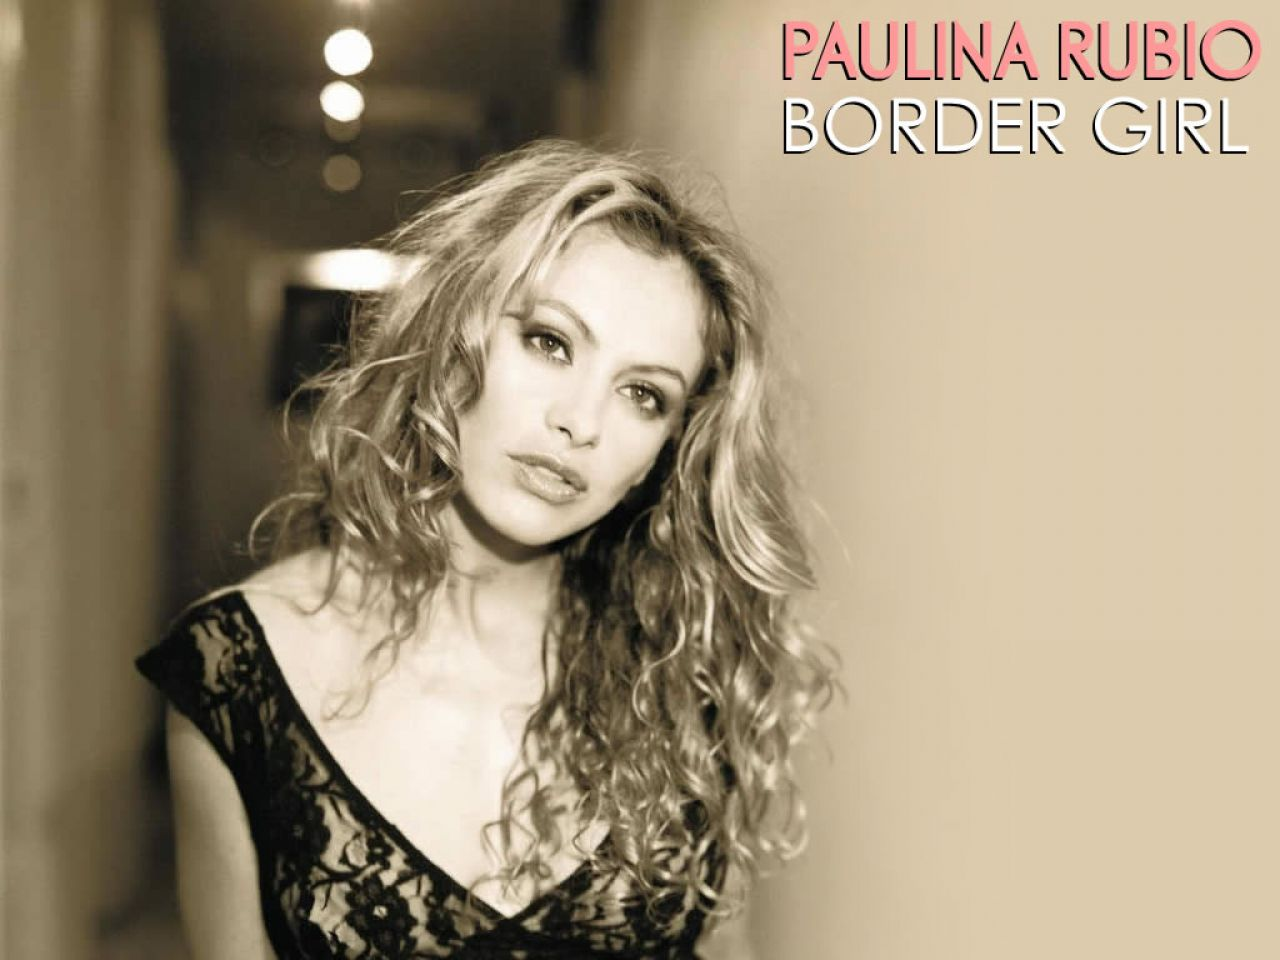 Paulina Rubio leaked wallpapers